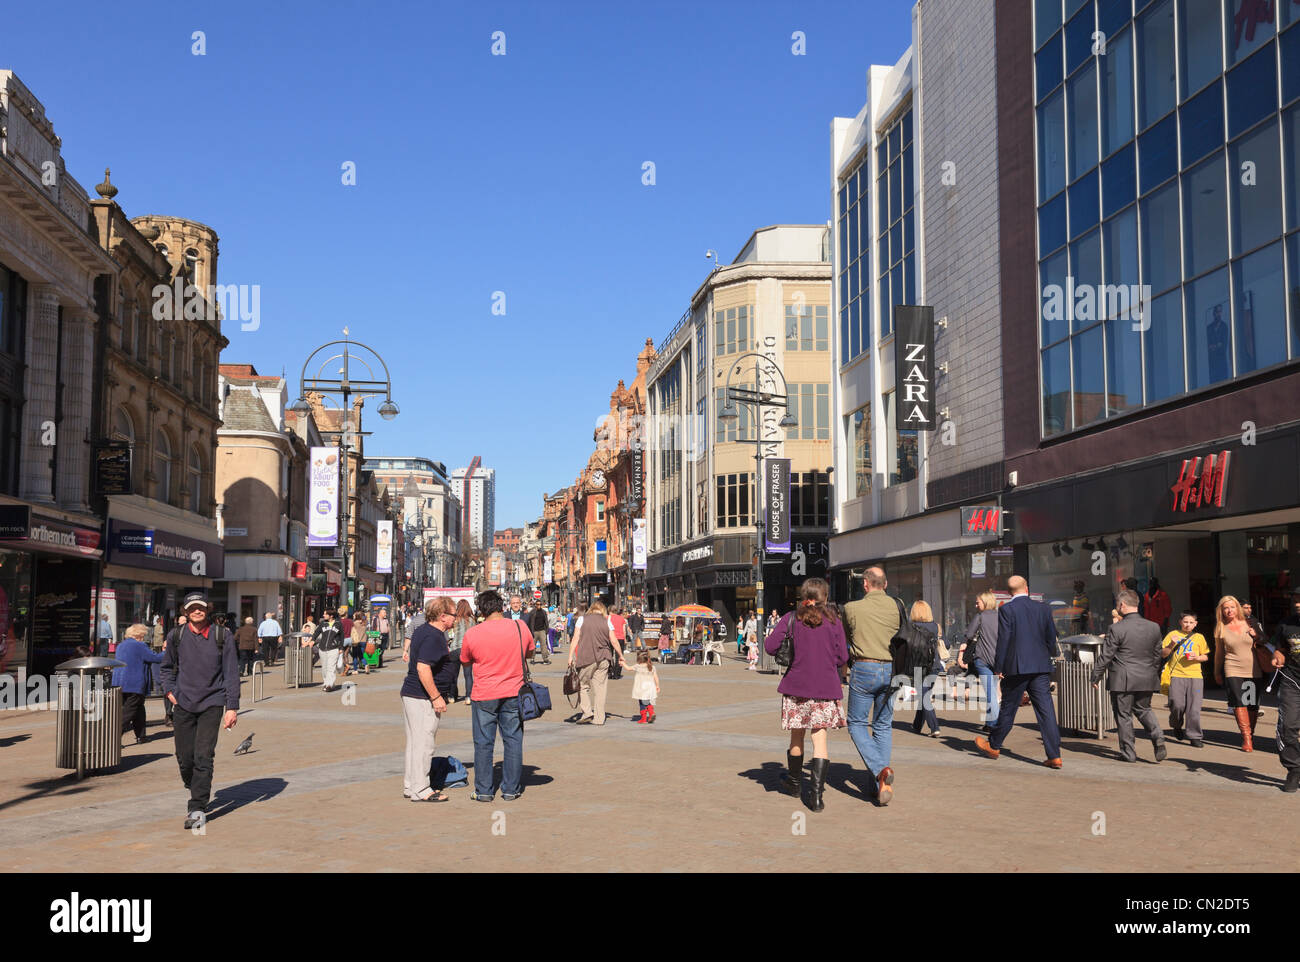 Busy main high street scene with people shopping in the city centre pedestrian precinct. Briggate, Leeds, West Yorkshire, - Stock Image